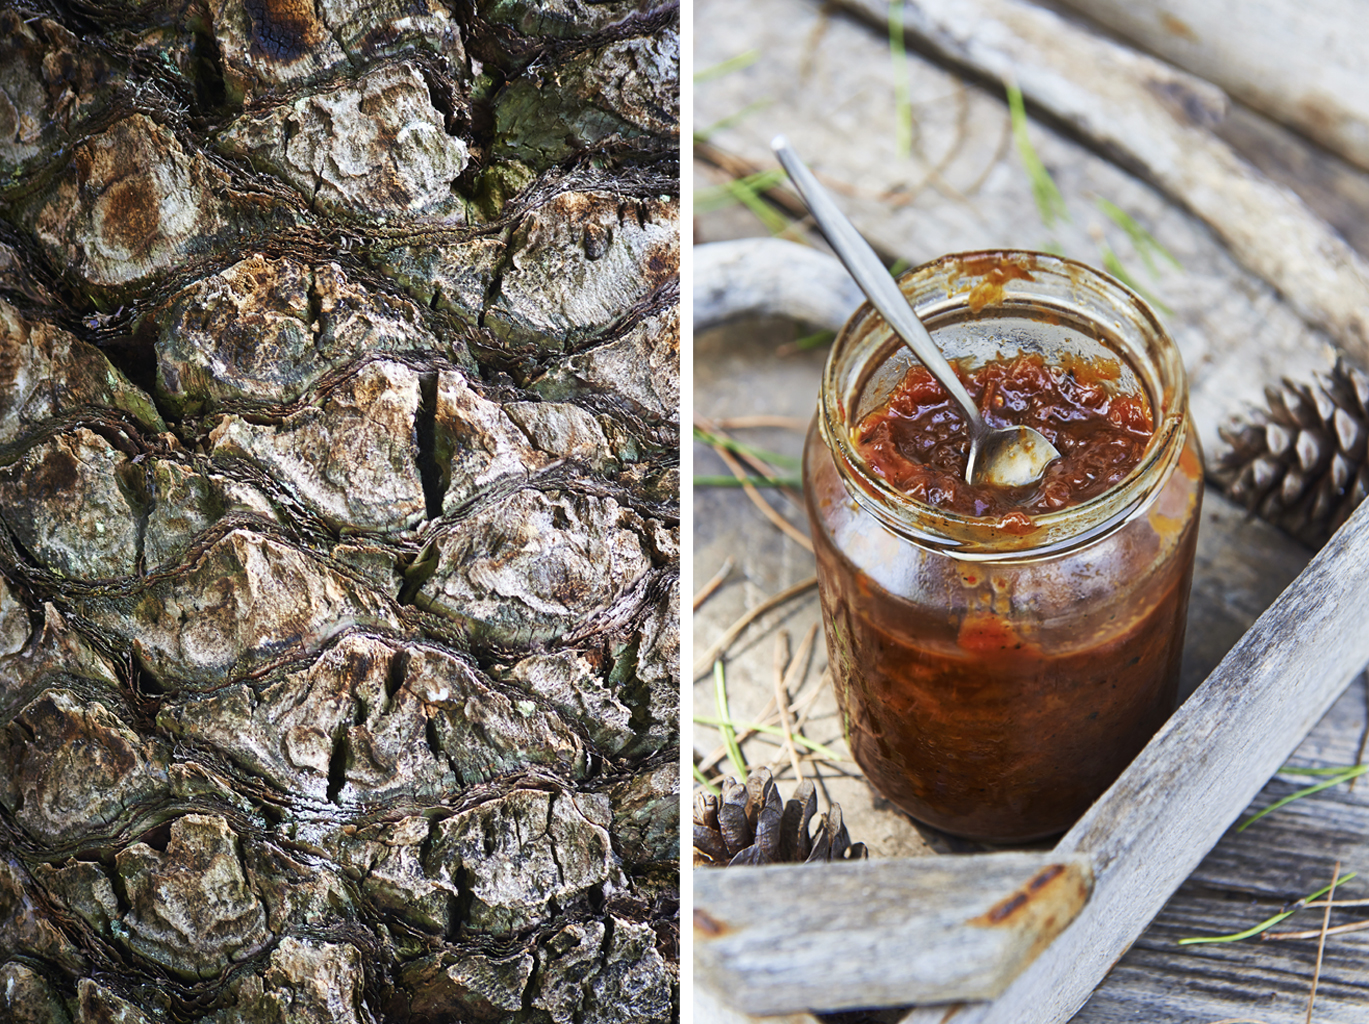 Corne's chutney  silver island photography photographer food photographer london britain uk recipe cookbook cook book ingredients travel greece sunshine bright vibrant delicious tasty method trees rustic daylight spoon tree detail jam jar spoon onion tomato pine tray close up